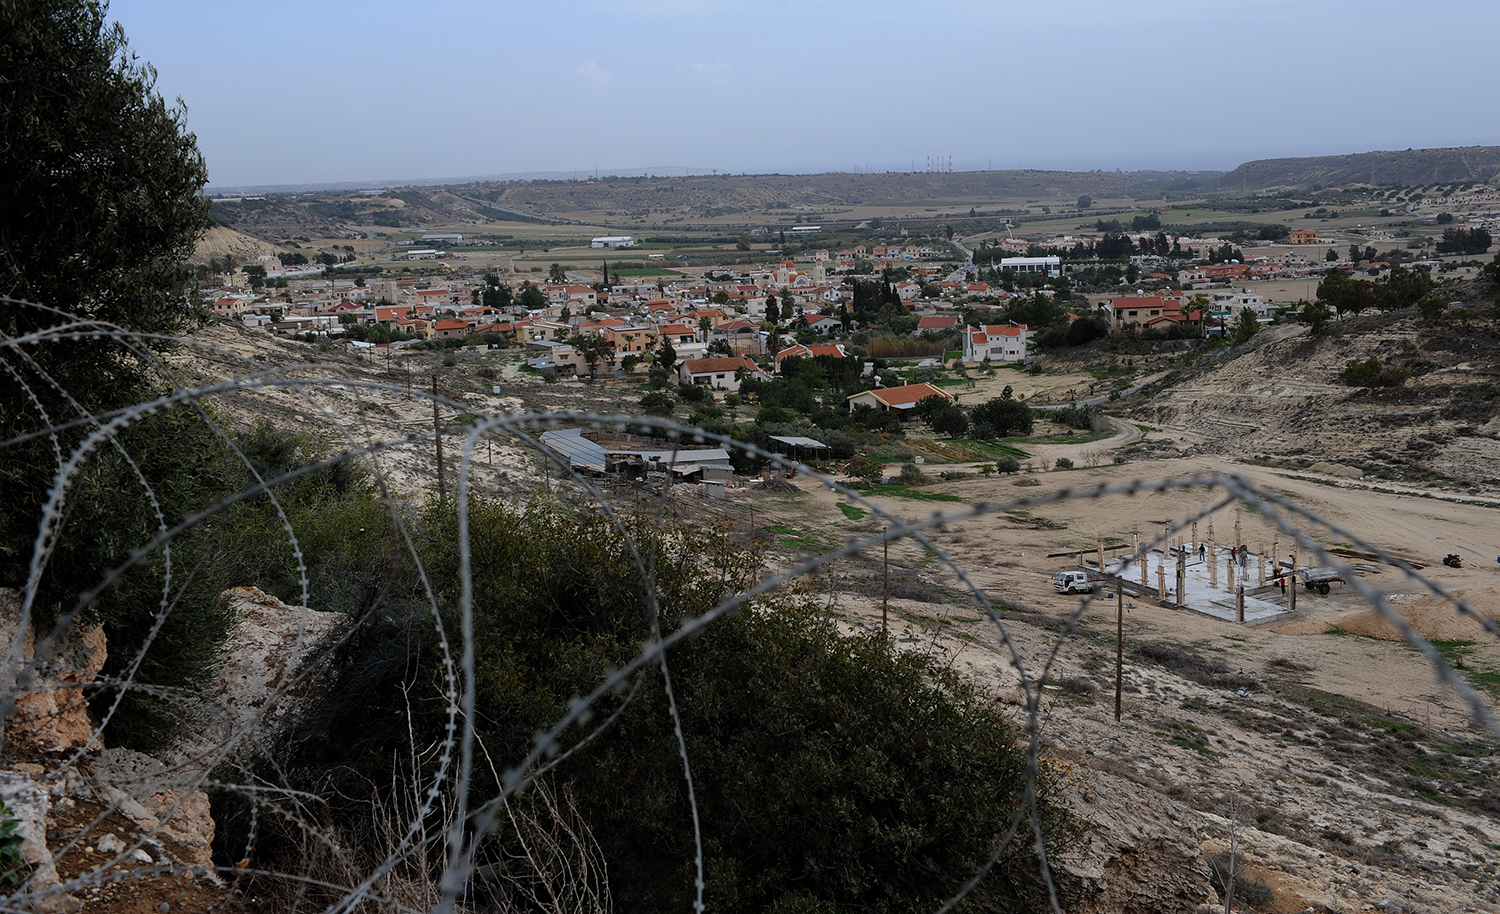 United Nations Observation Post, OP-126, overlooks the village of Pyla, pictured on November 24, 2008. Pyla is located inside the Buffer Zone between the Greek and Turkish regions of Cyprus. Photo: Master Corporal Robert Bottrill, Canadian Forces Combat Camera. © 2008 DND/MDN Canada.